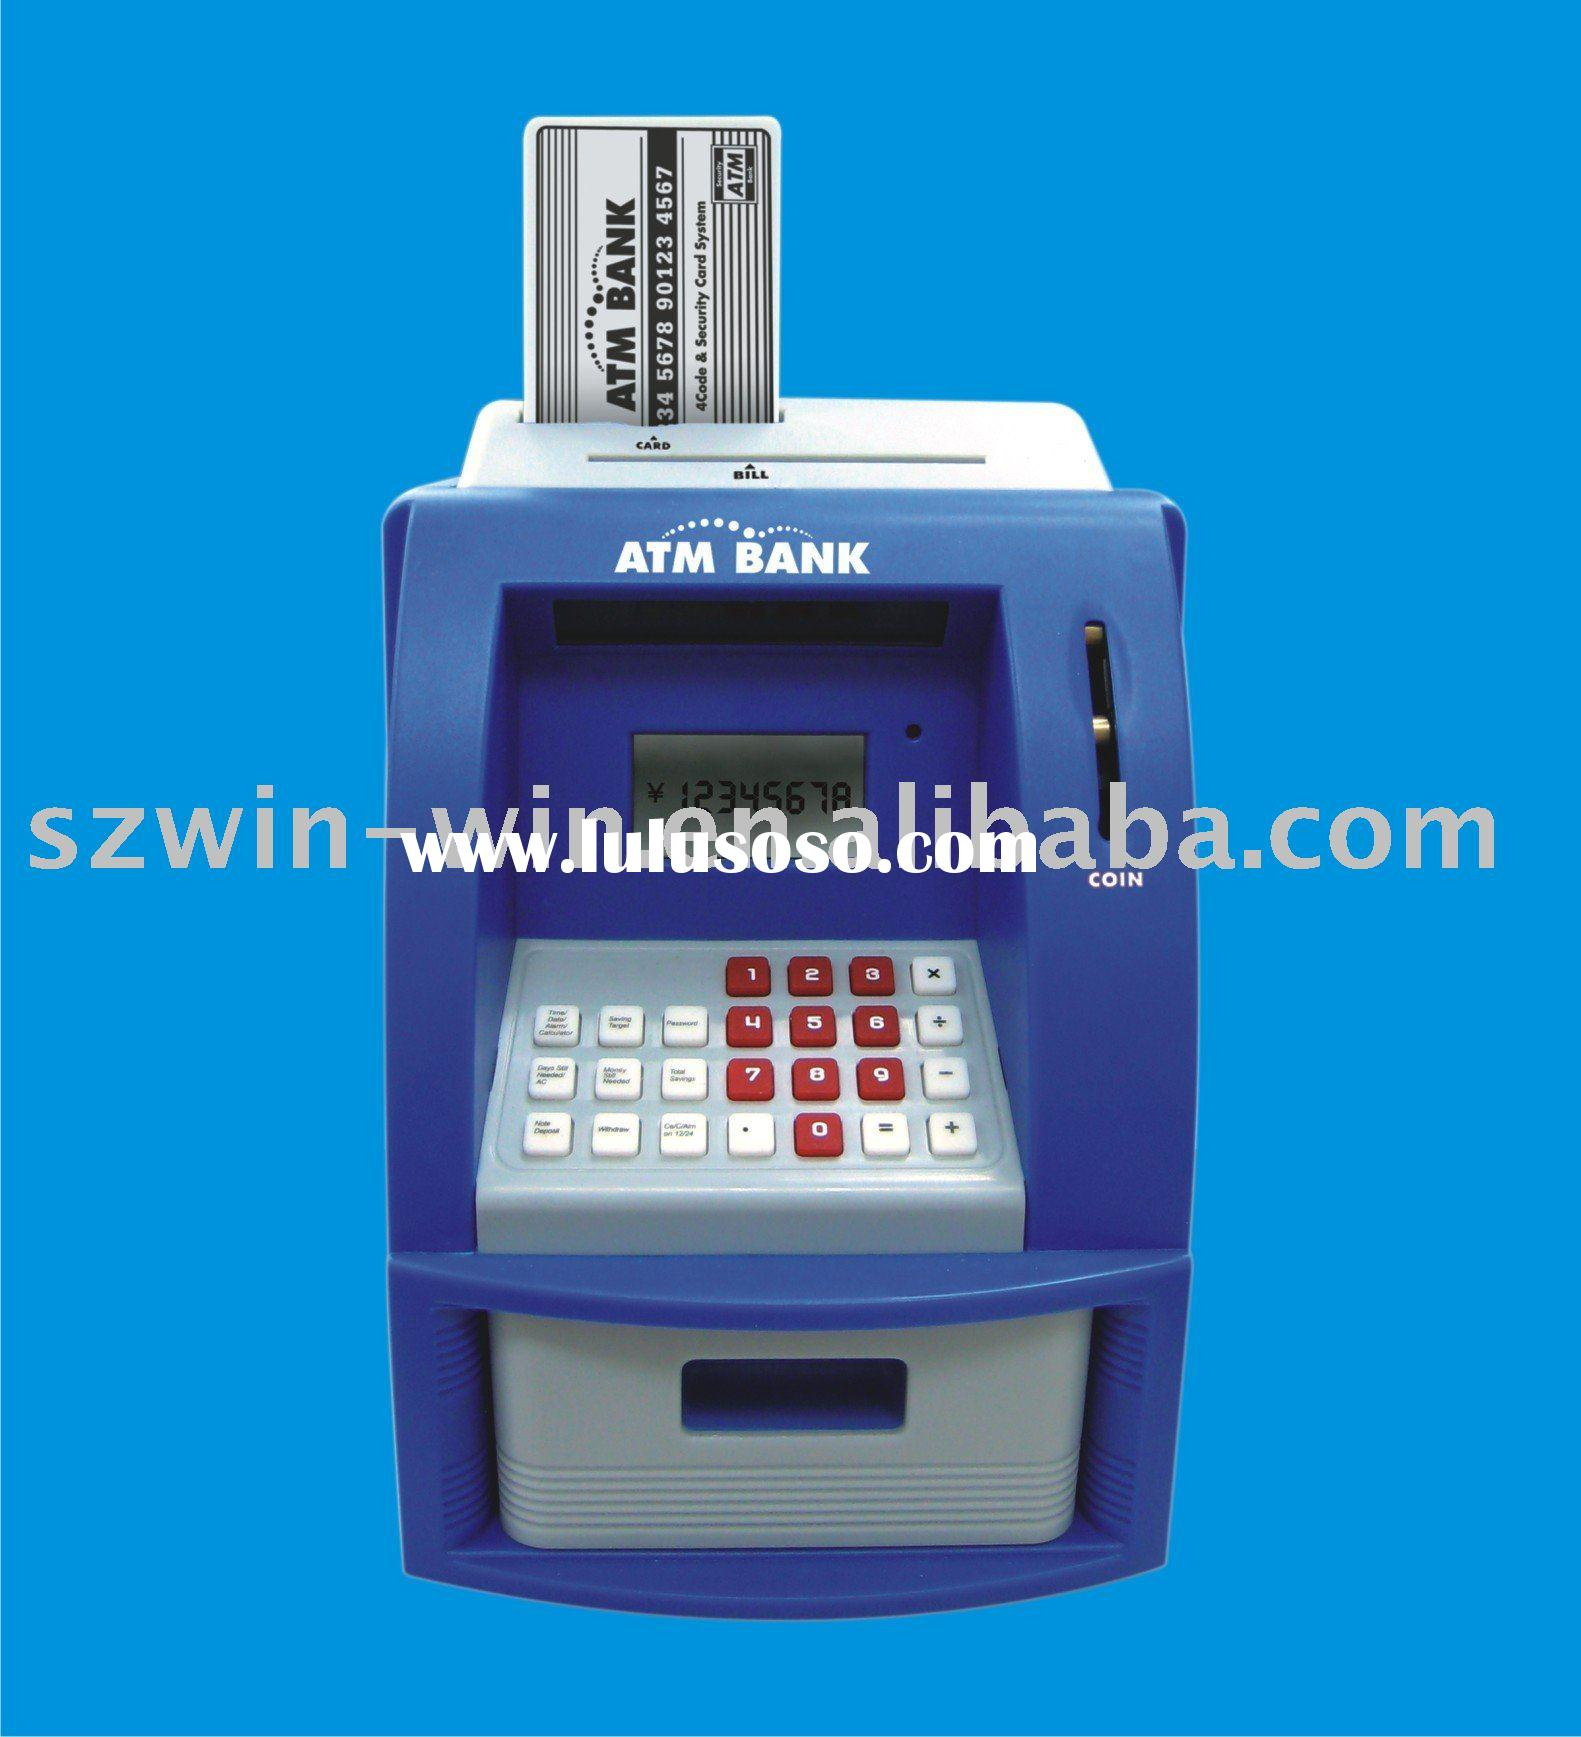 Personal Toy ATM Machine/ATM BANK